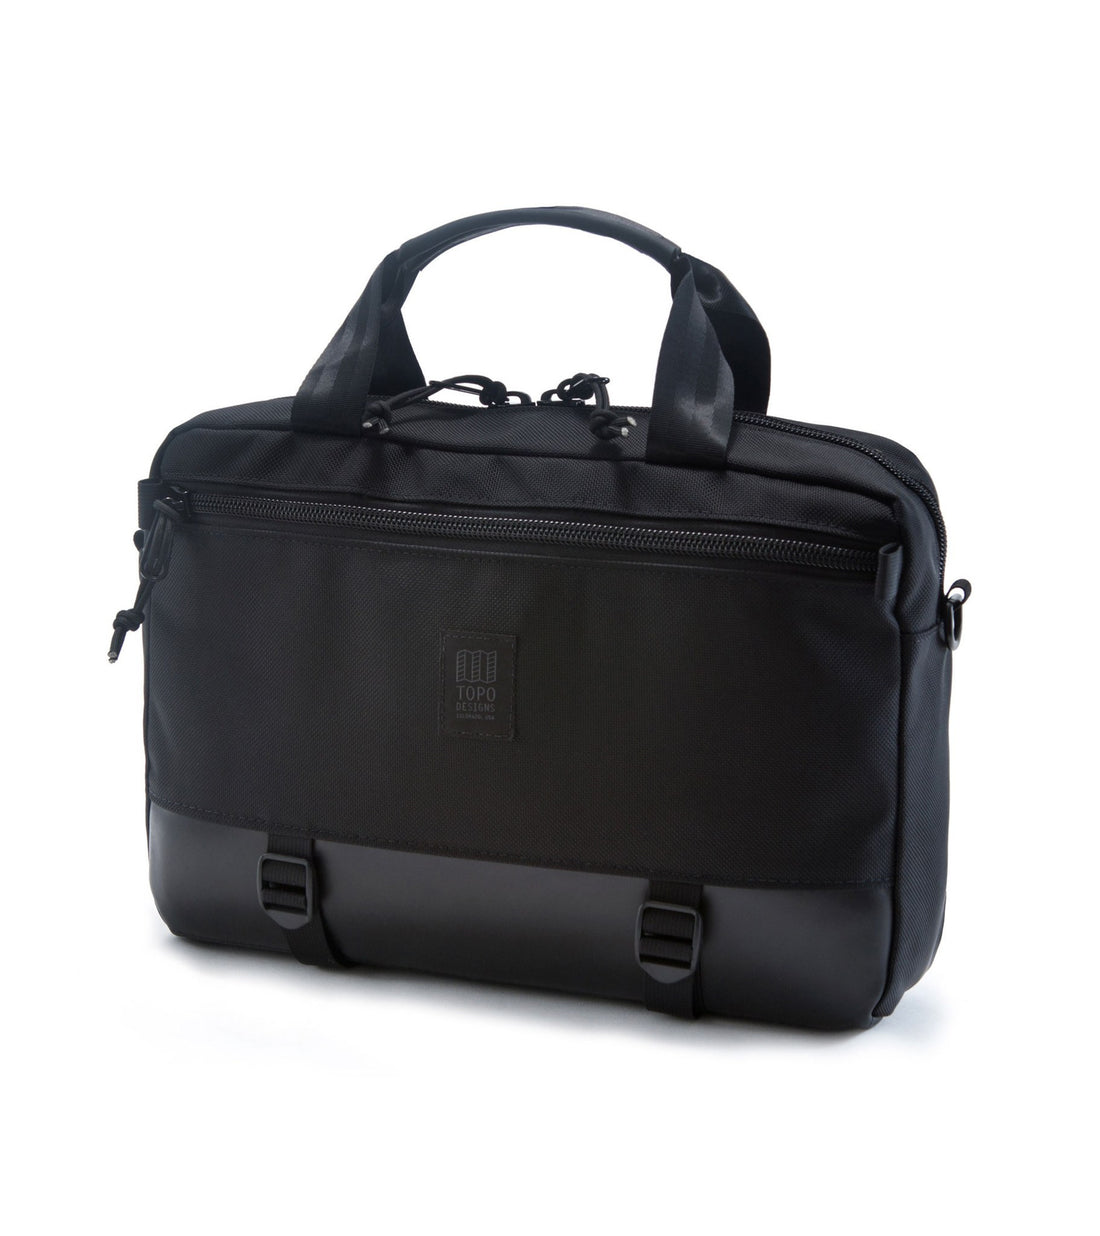 Topo Designs Commuter Briefcase - Accessories: Bags - Iron and Resin